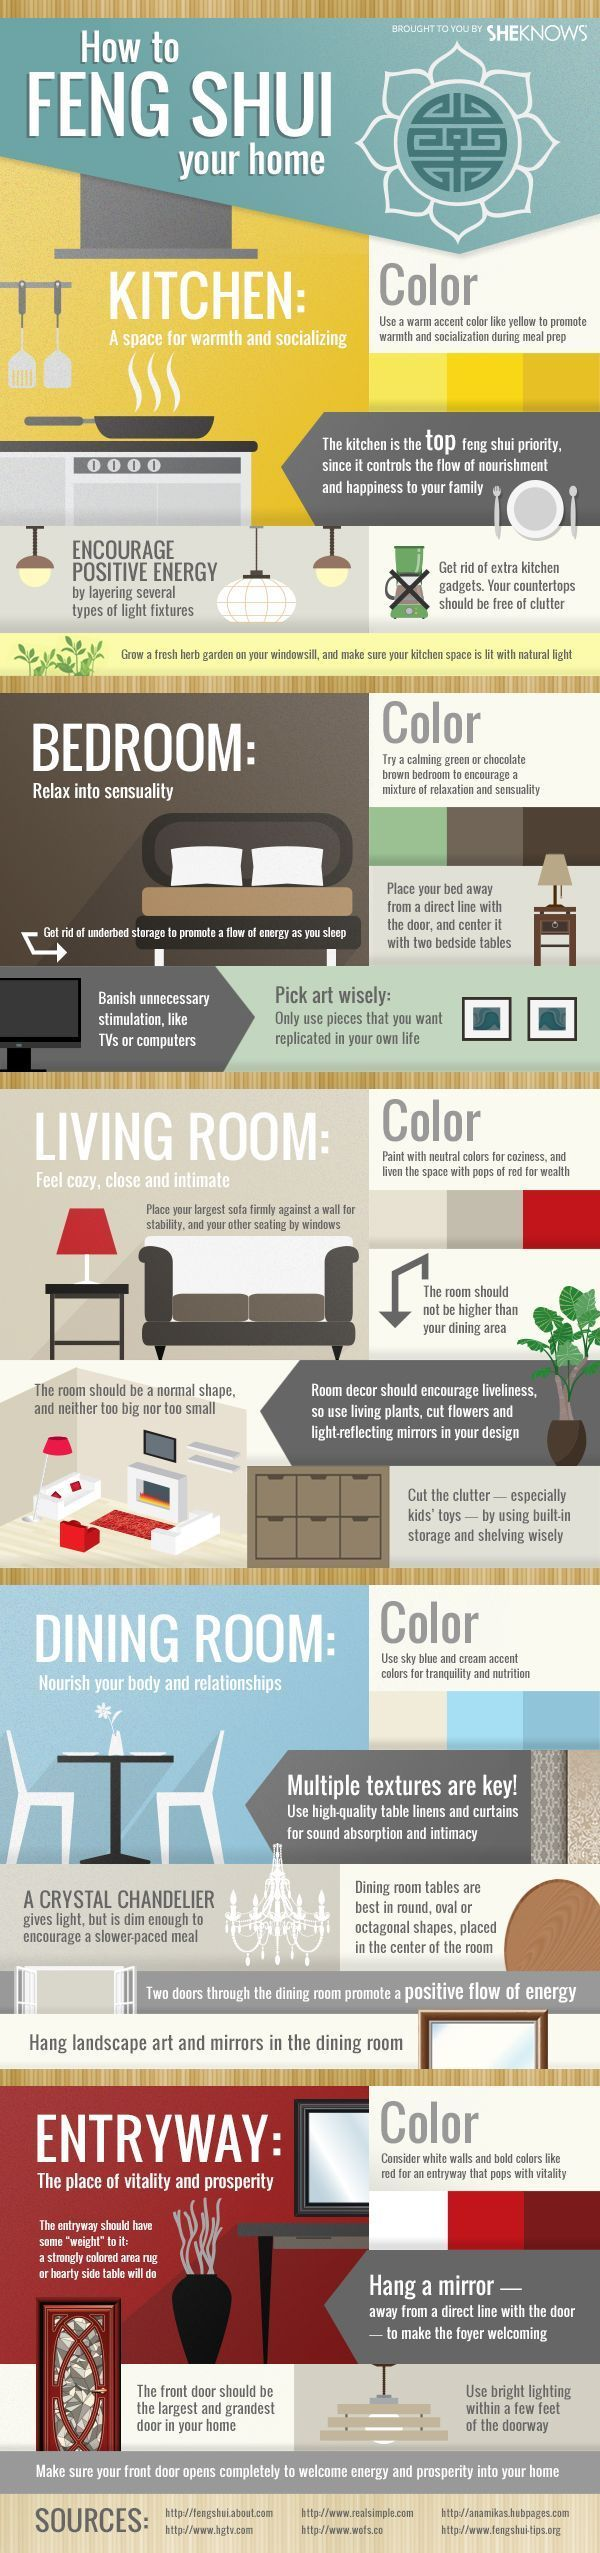 #INFOGRAPHIC: A room-by-room information to feng shui your own home…